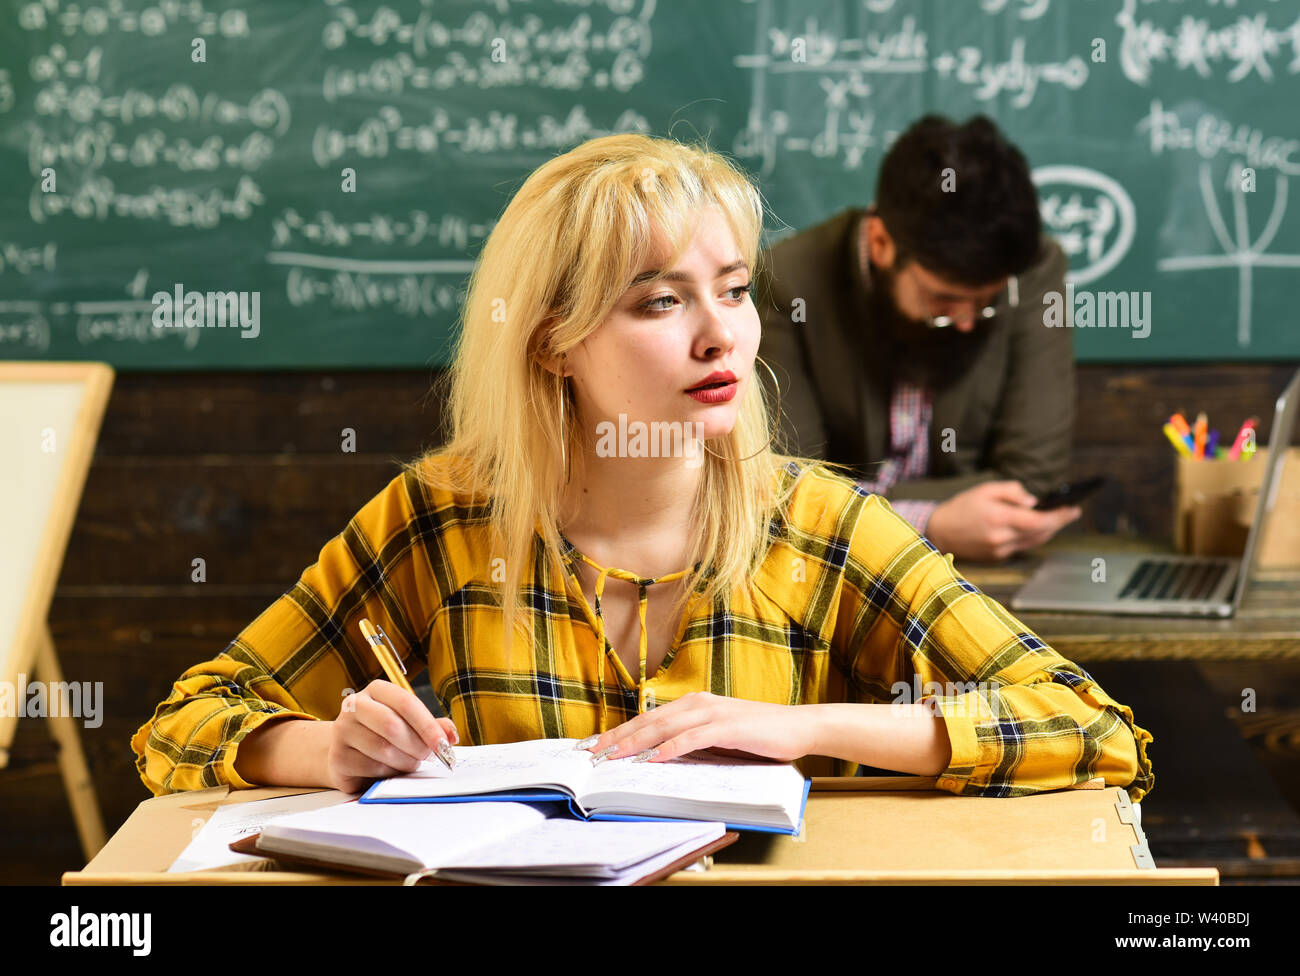 Students studying and testing lesson from teacher in classroom at university. Student looks for studying method that suits his learning style. Student - Stock Image